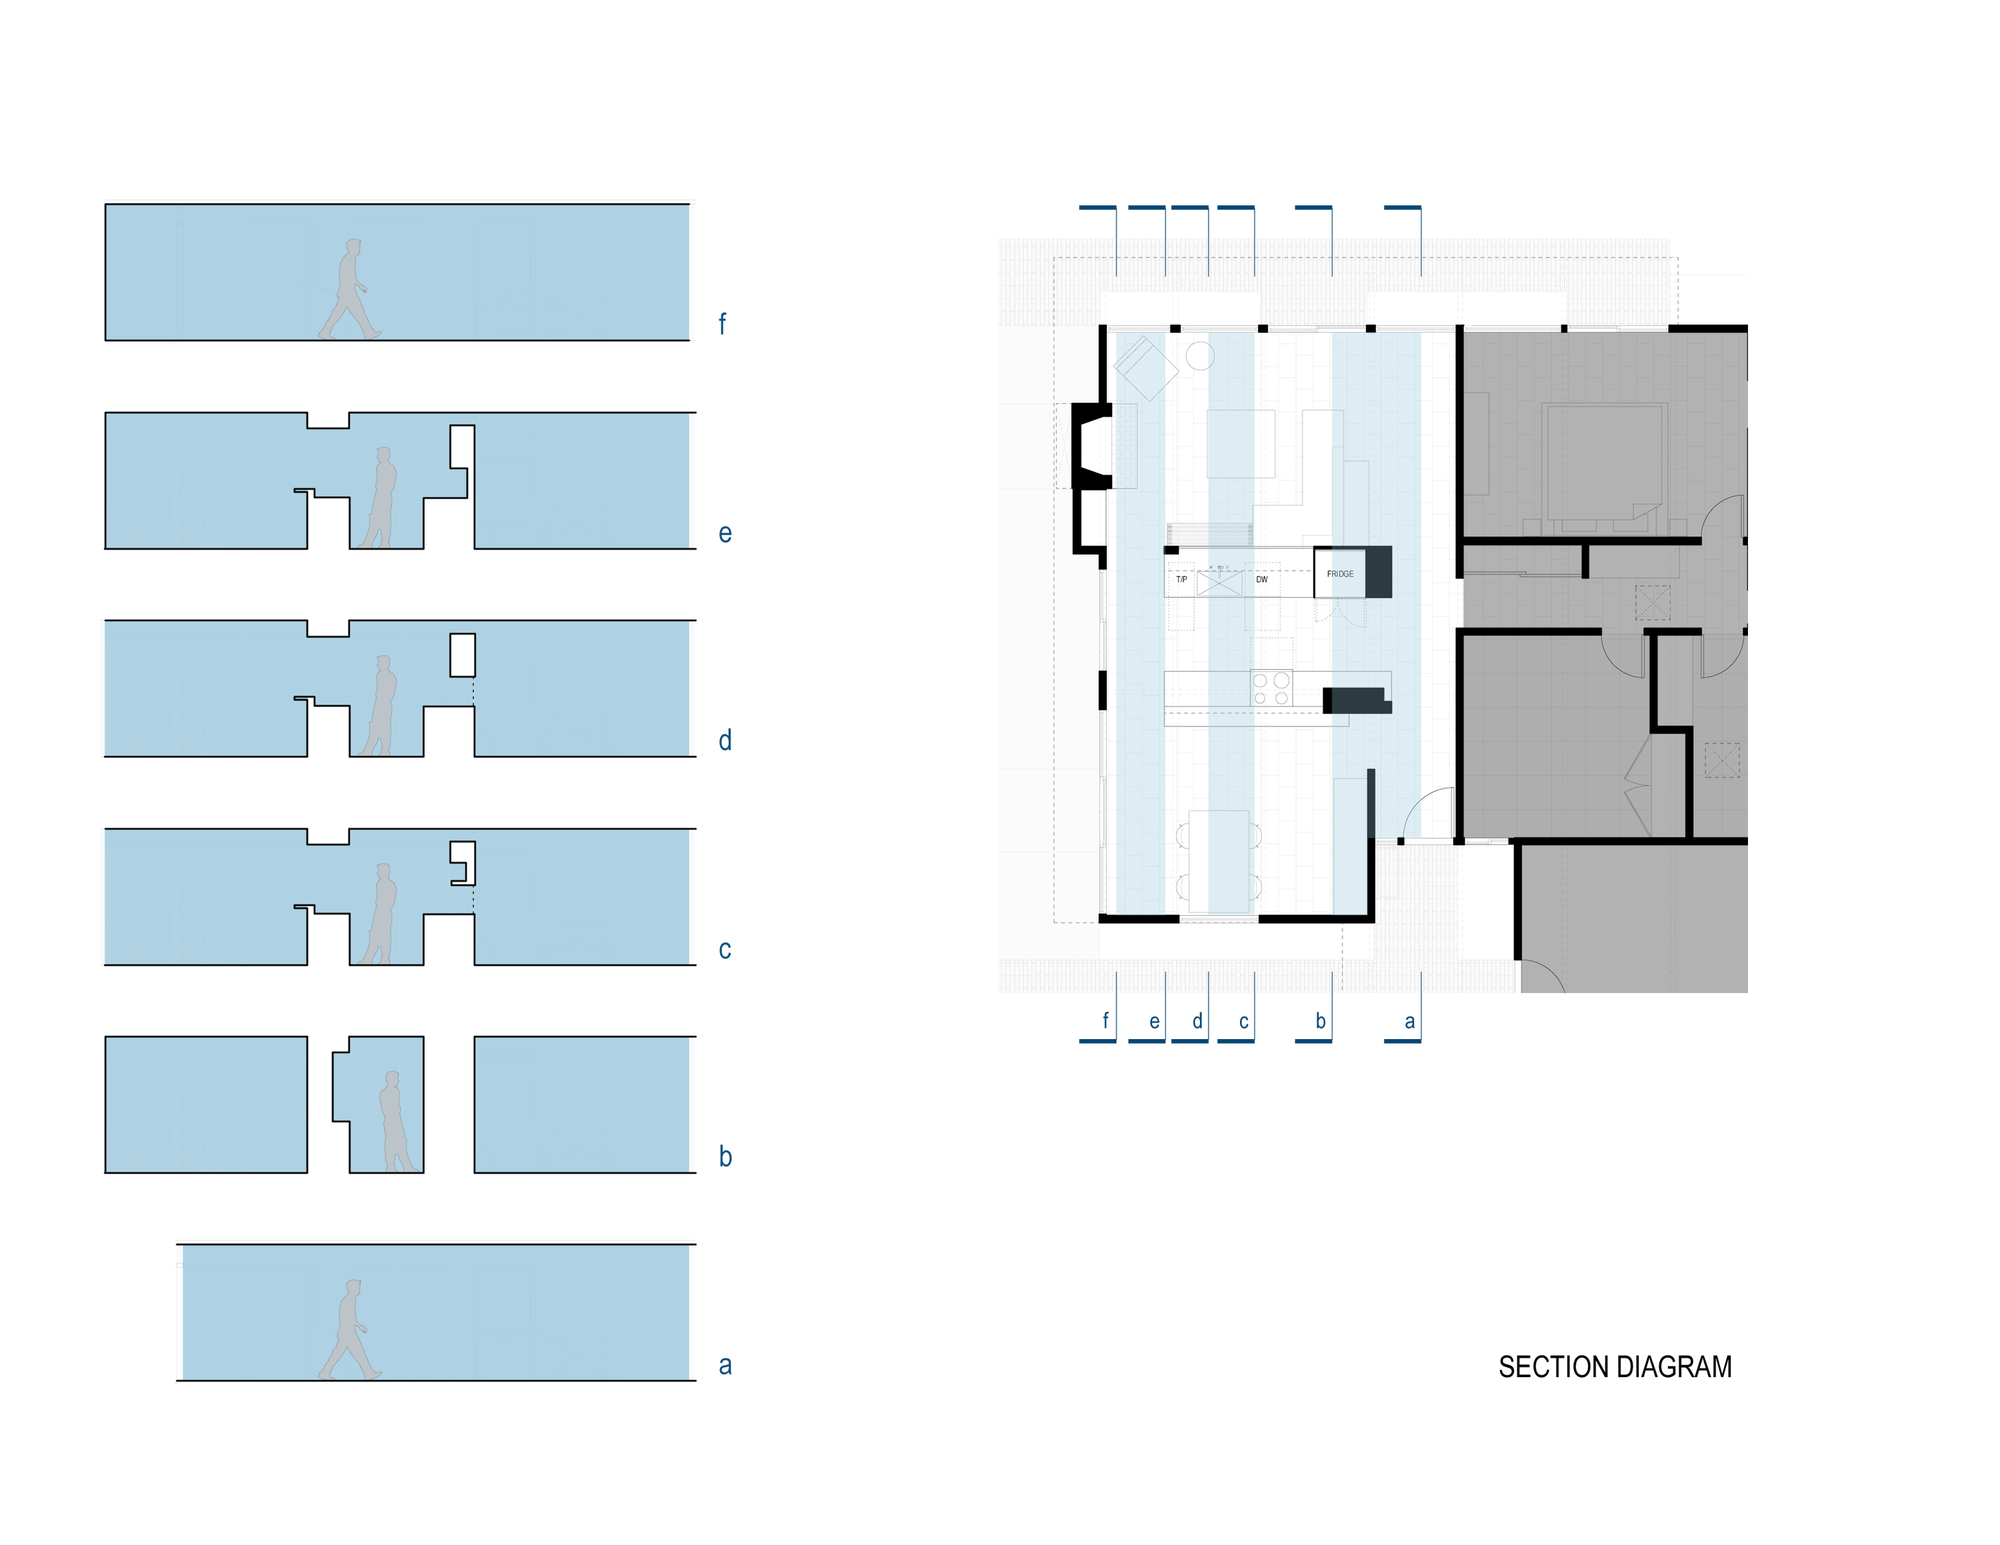 5306c8b3c07a80c45f0000d4_shoup-residence-buildin-lab_shoup_bl_diagram_3